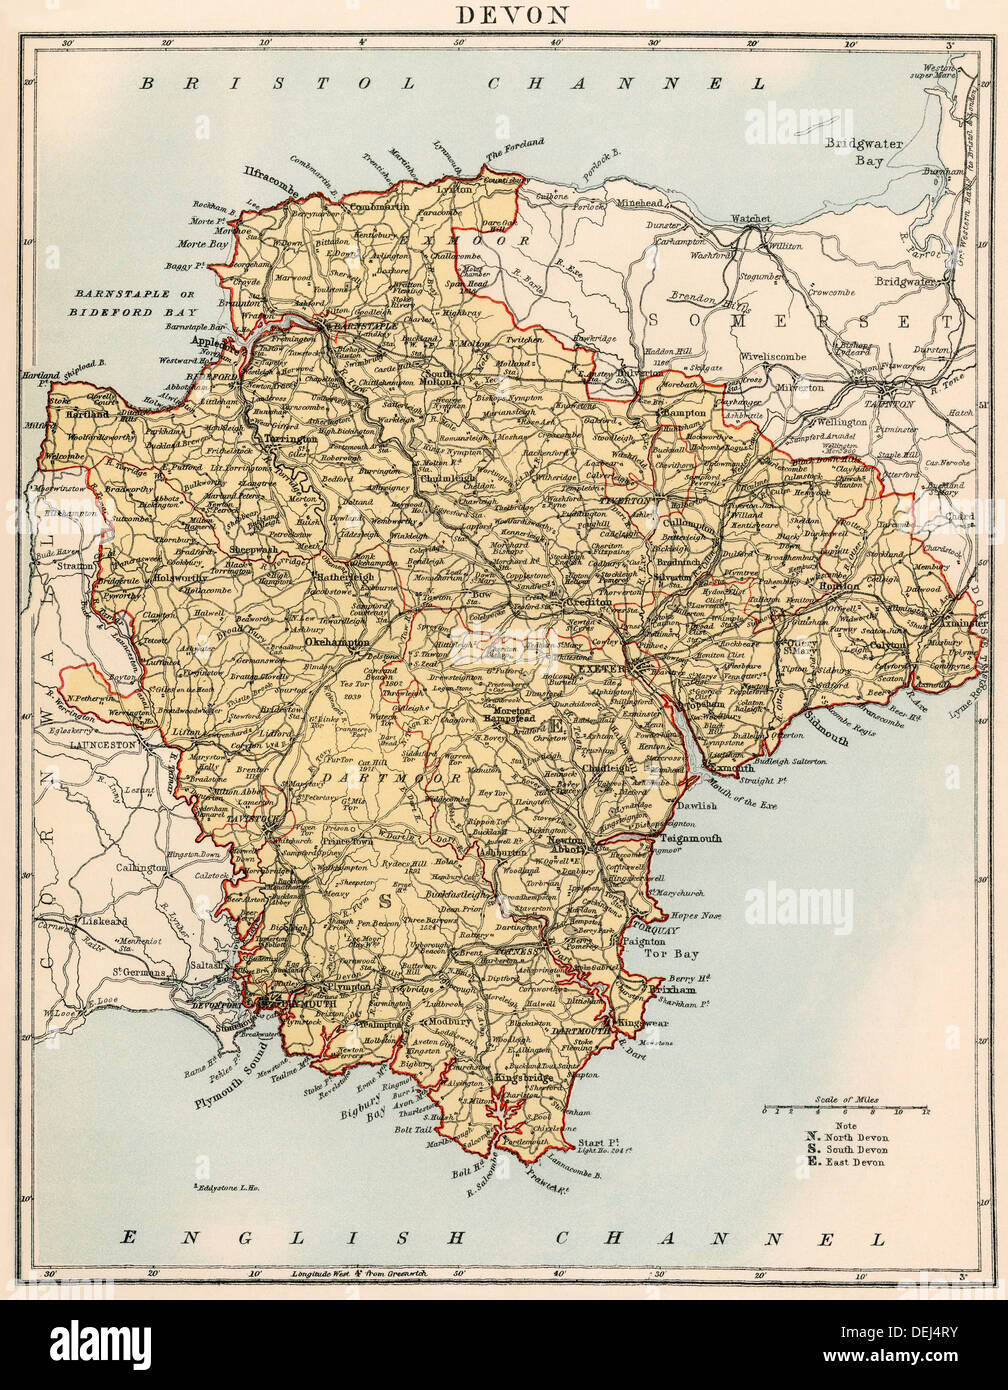 Map of Devon England 1870s Color lithograph